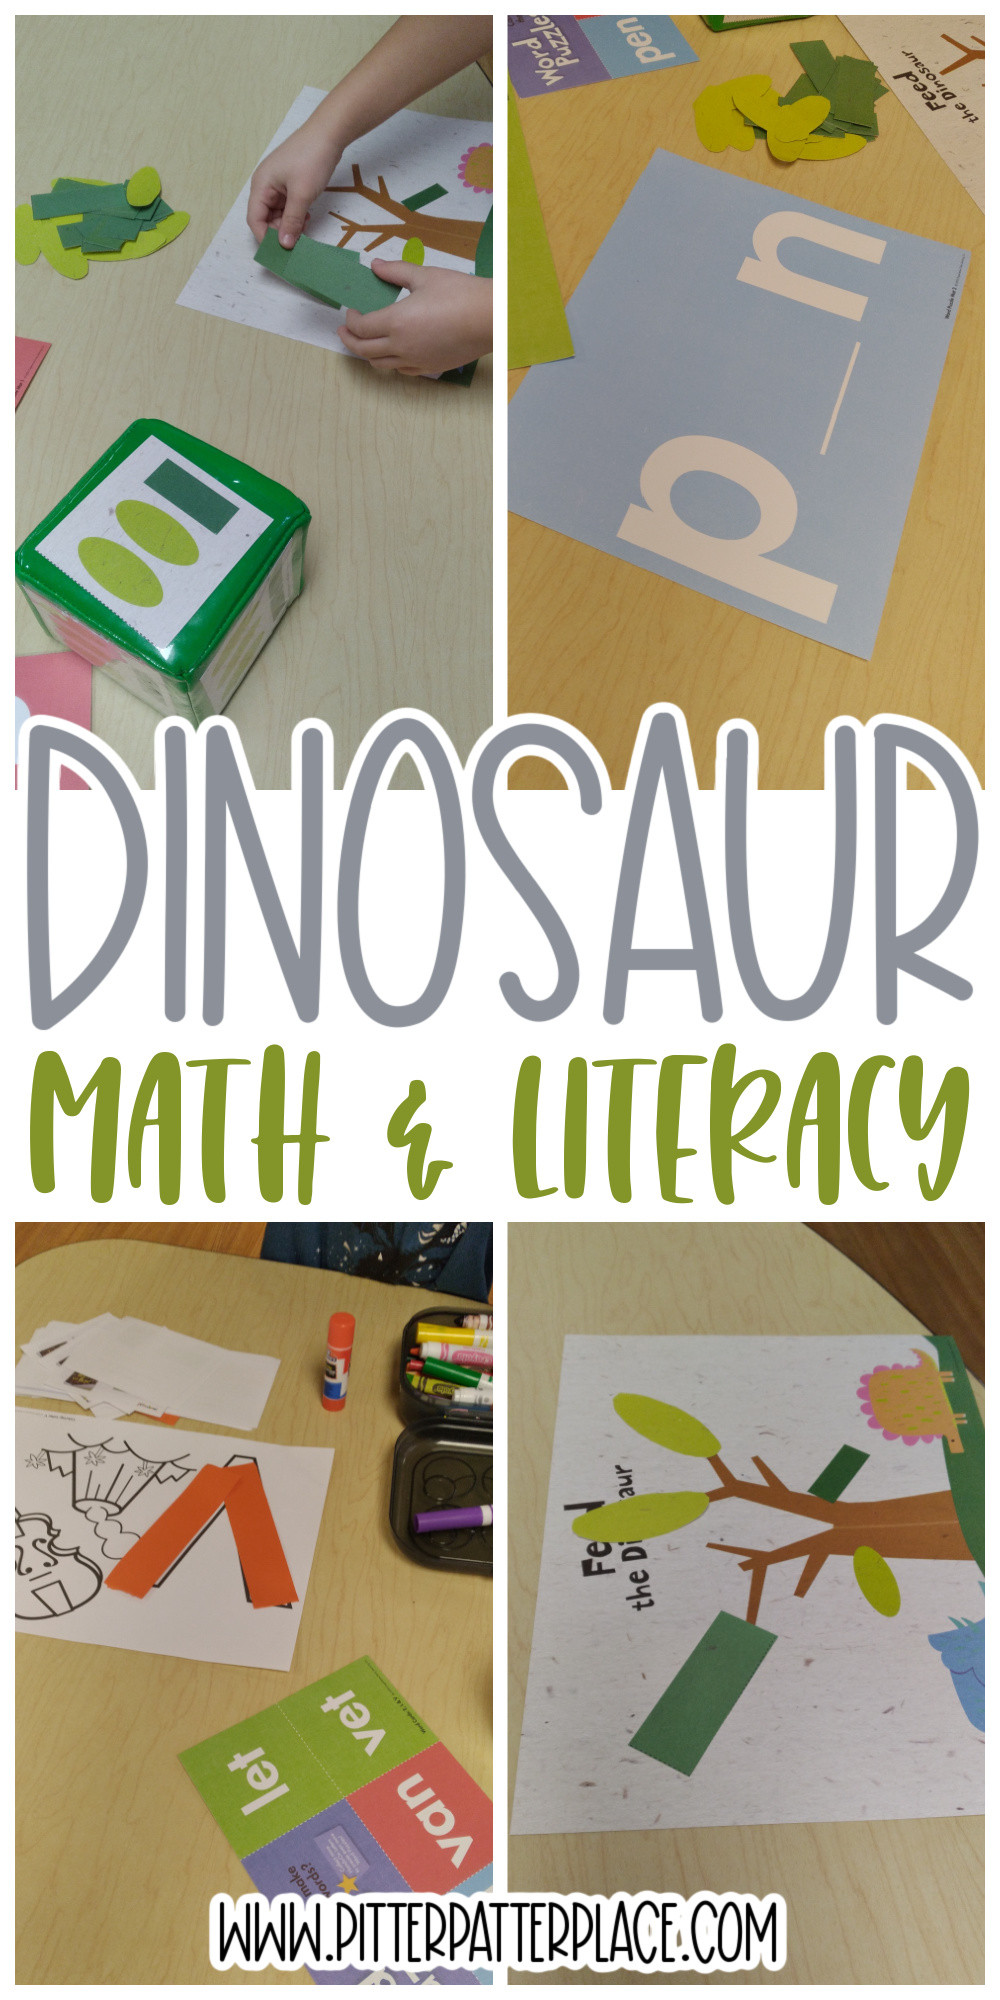 collage of dinosaur activities with text: Dinosaur Math & Literacy